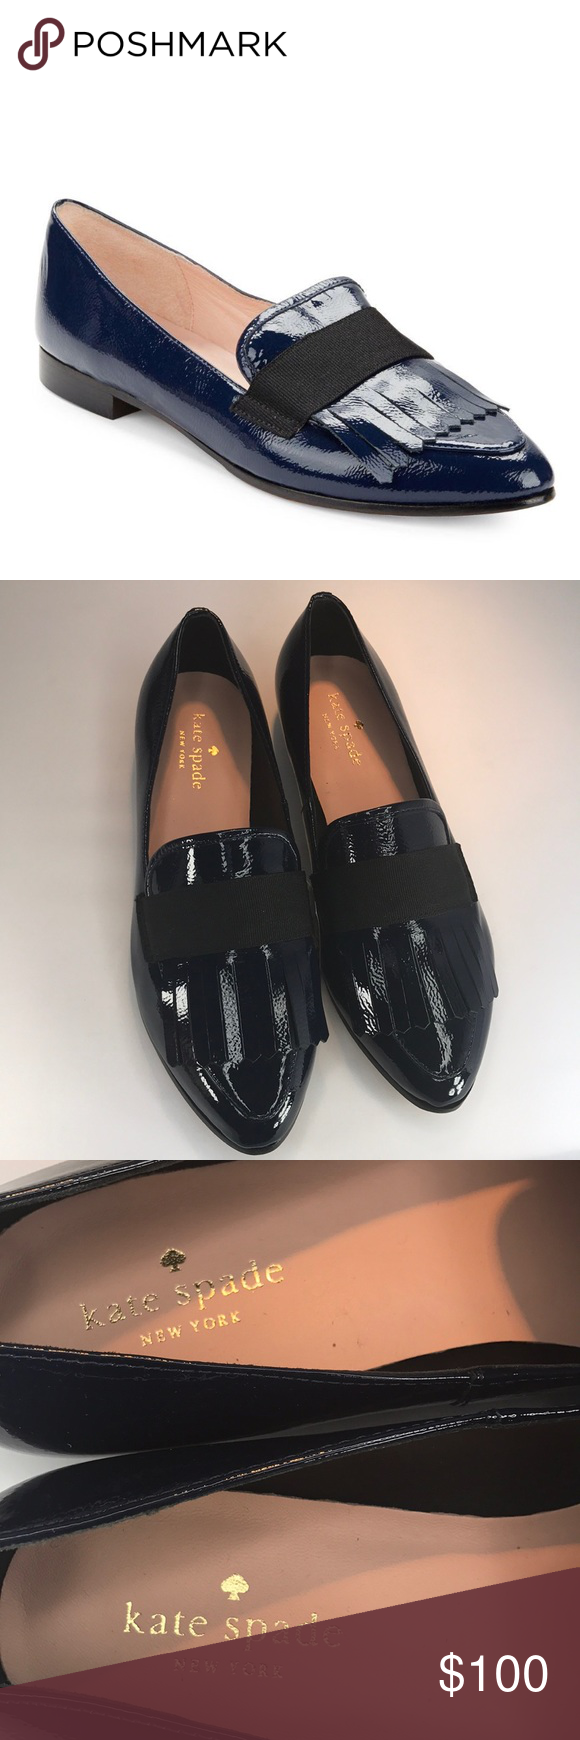 8b28a3ed6eb4 Kate Spade Cayla Point-Toe Patent Leather Loafer Brand New Never Worn Lapis  Blue Kate Spade loafers. Retails  258. No box! kate spade Shoes Flats    Loafers